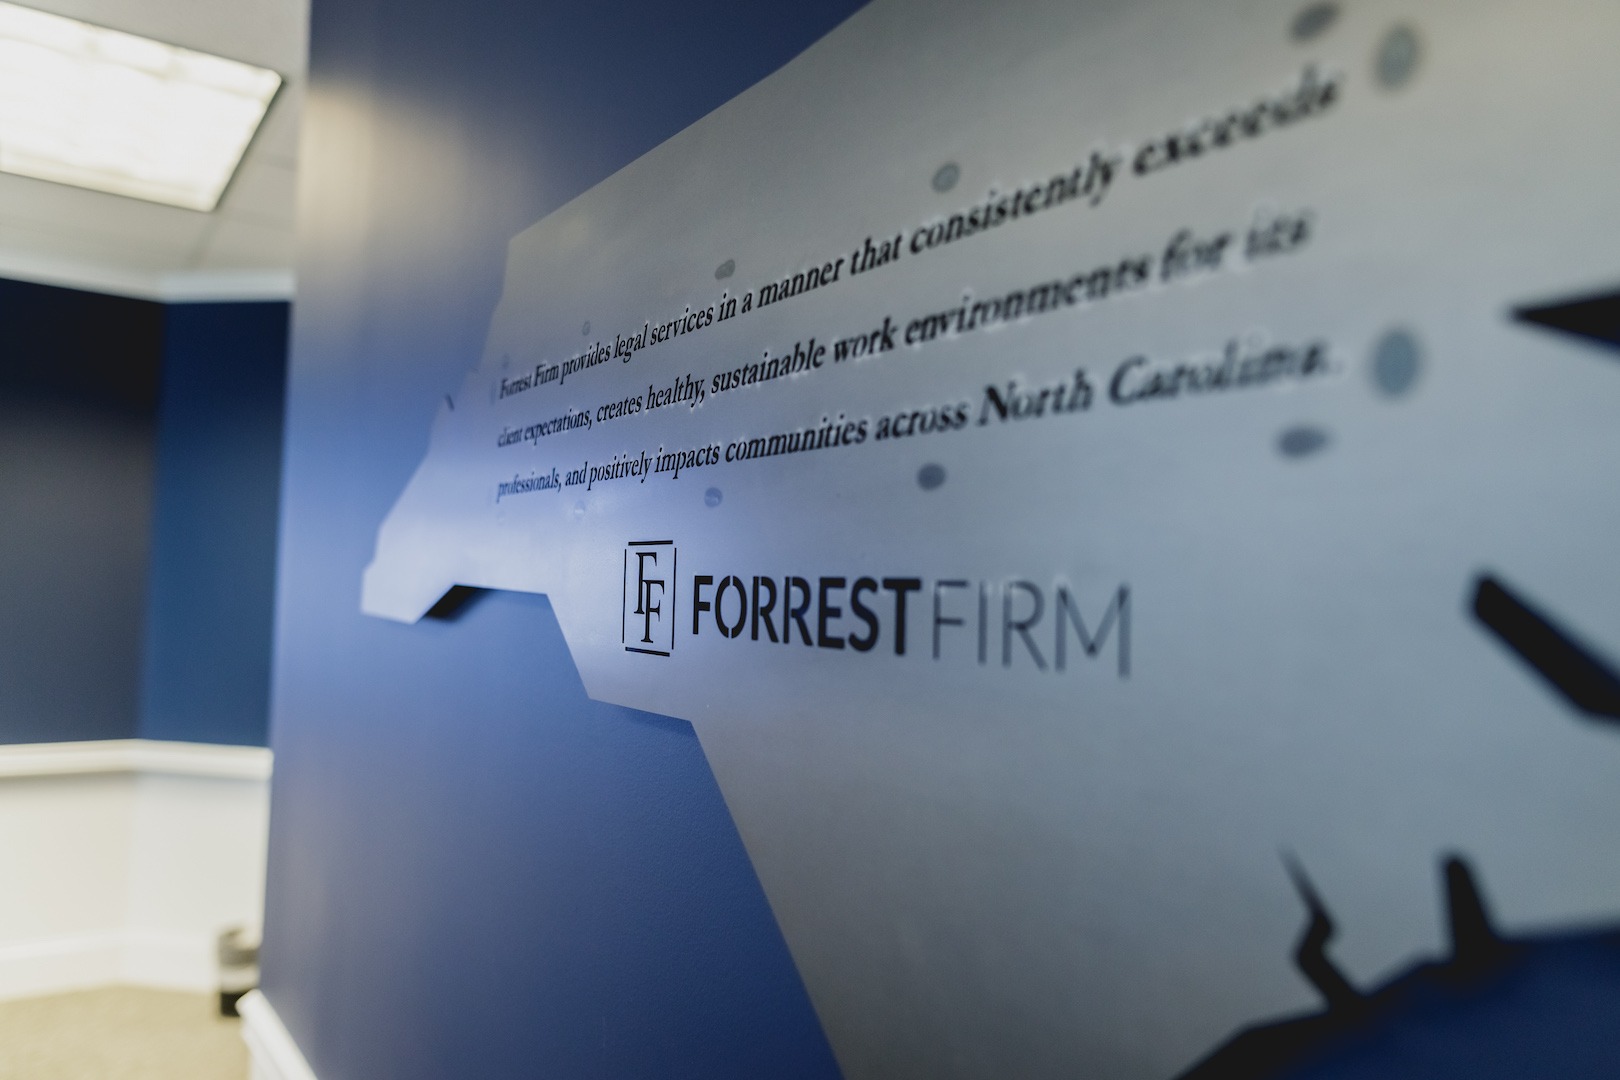 Forrest Firm